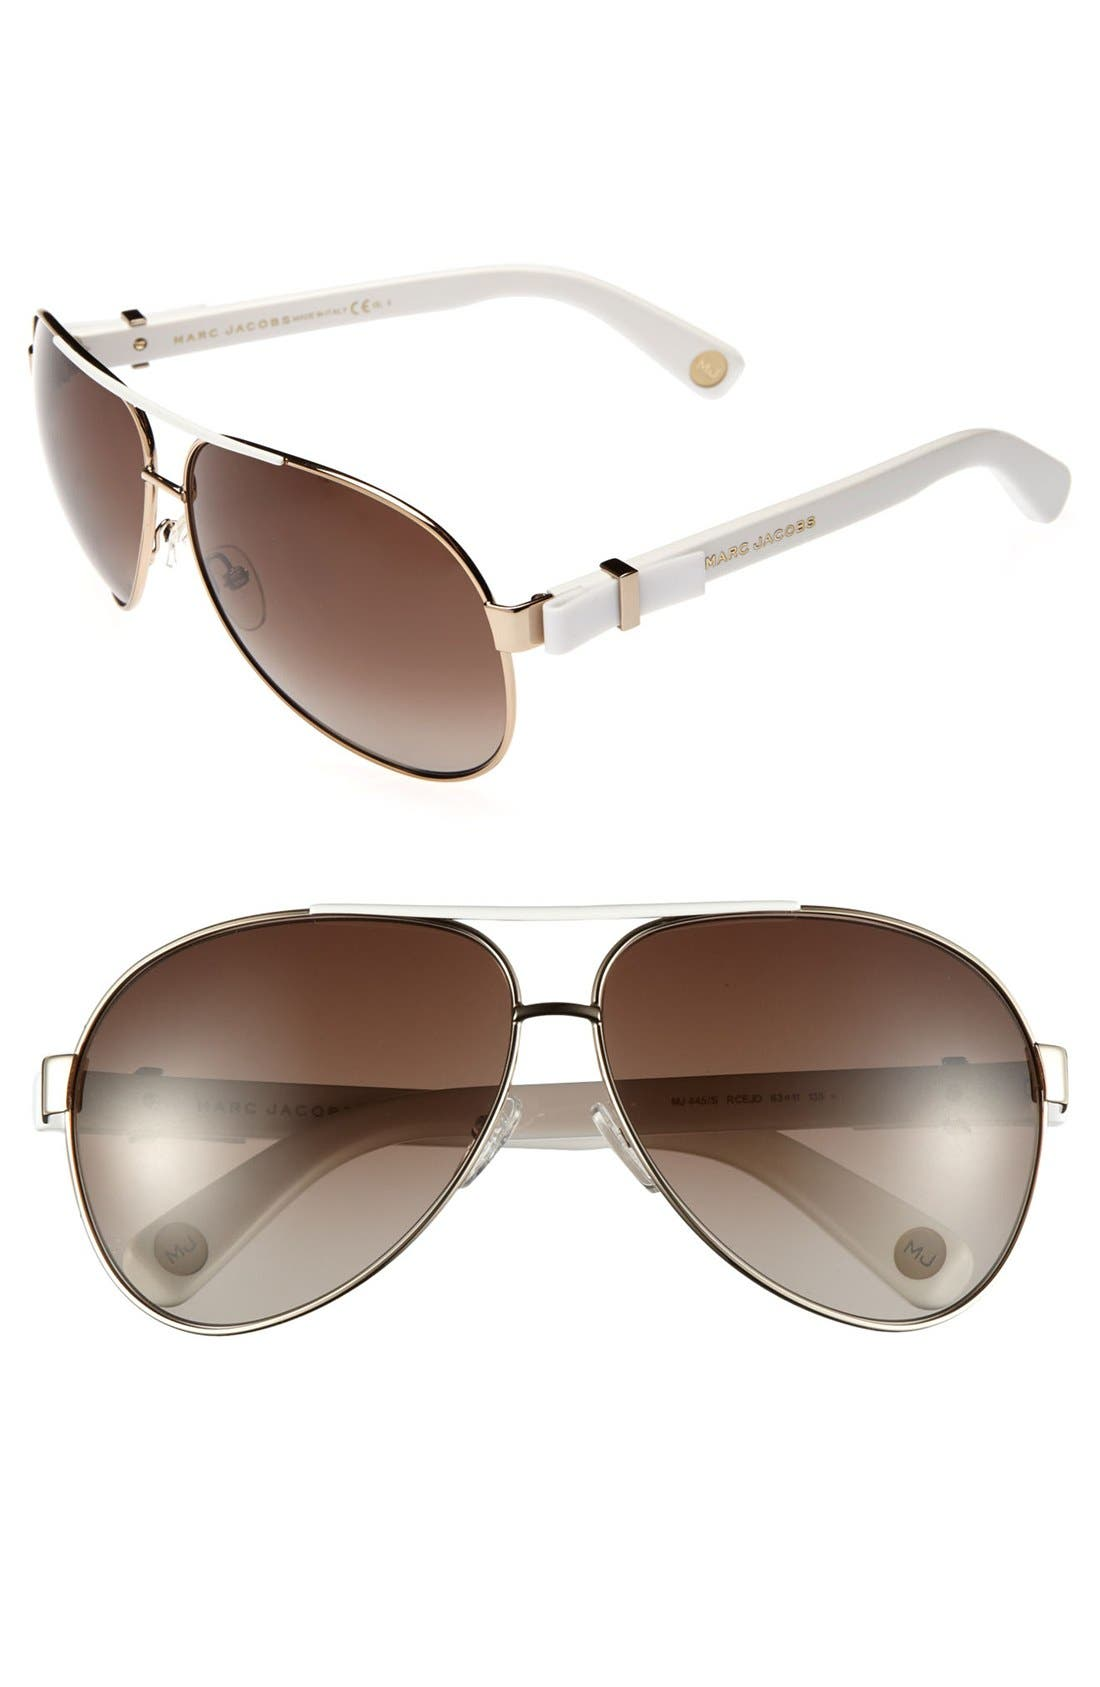 Main Image - MARC JACOBS 63mm Metal Aviator Sunglasses